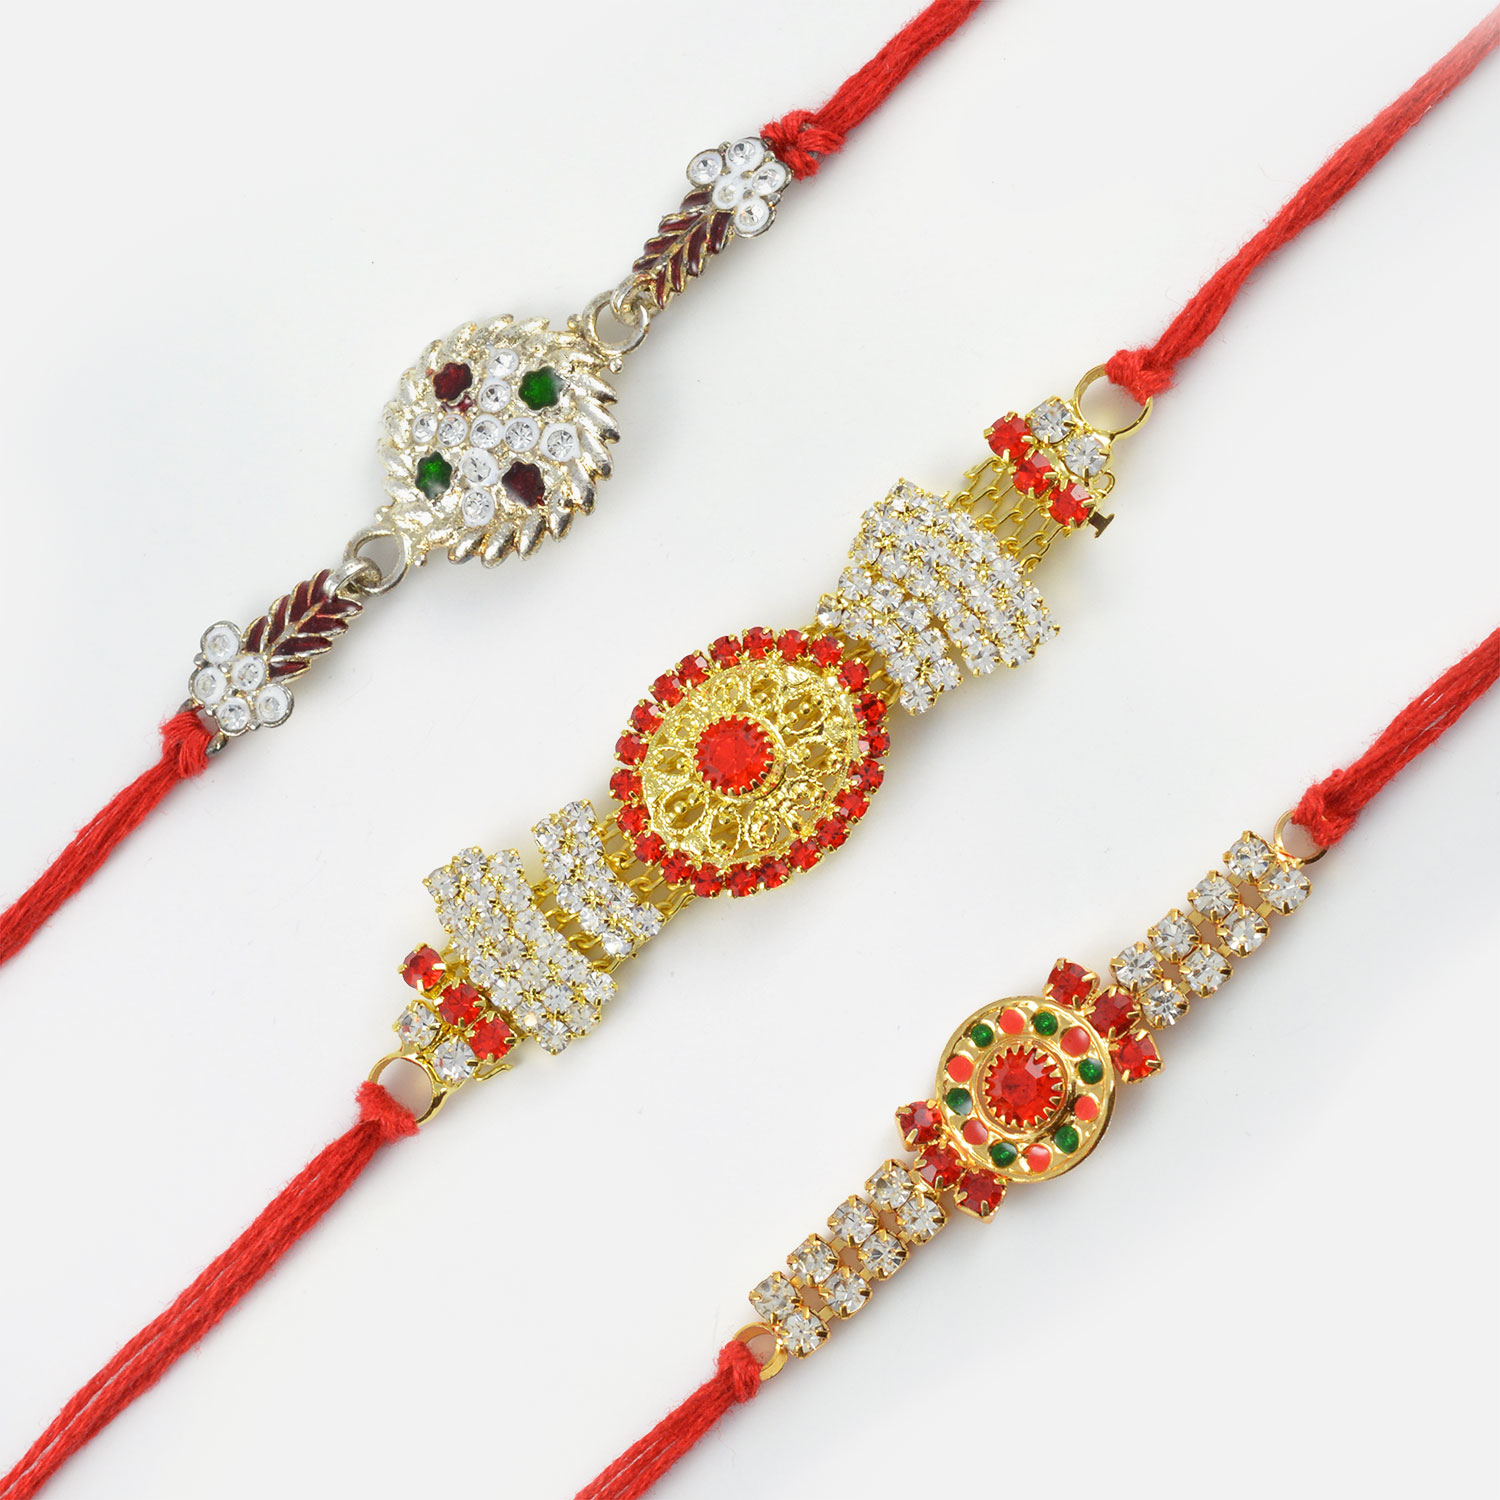 Designer Rakhi Set of 3 with Mauli String